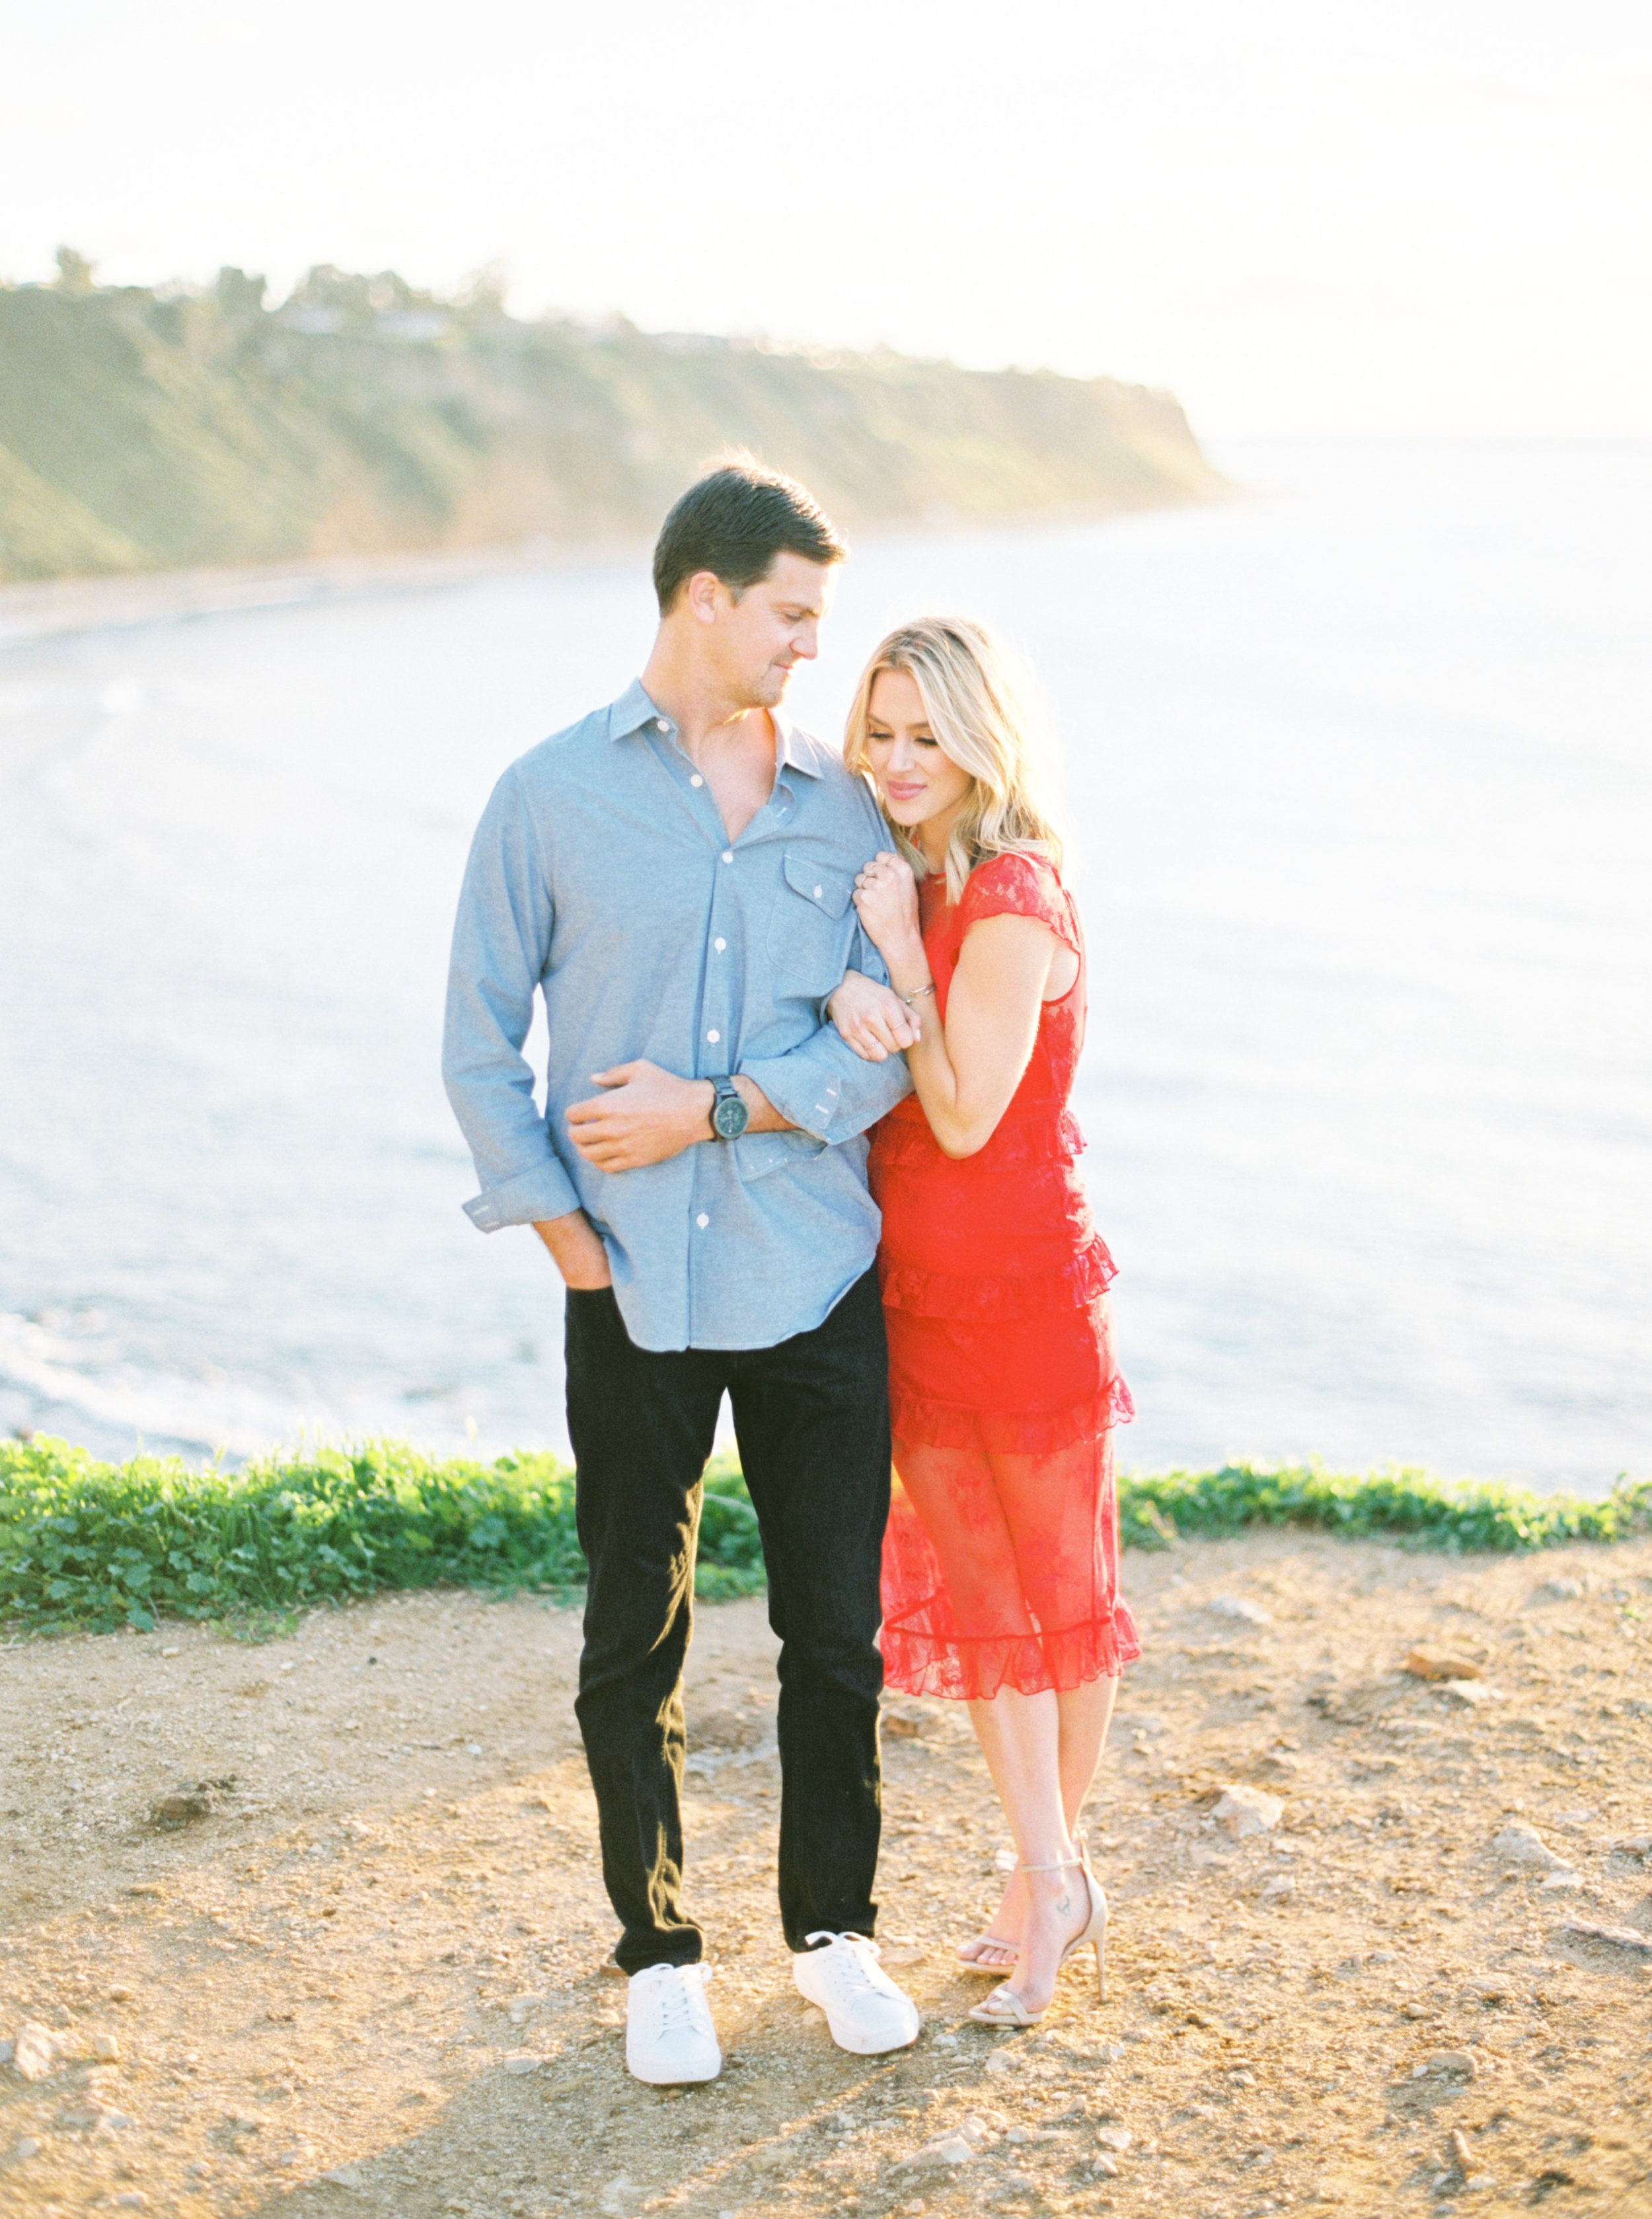 Rachel Owens Photography - Palos Verdes Beach Engagement - 10.jpg